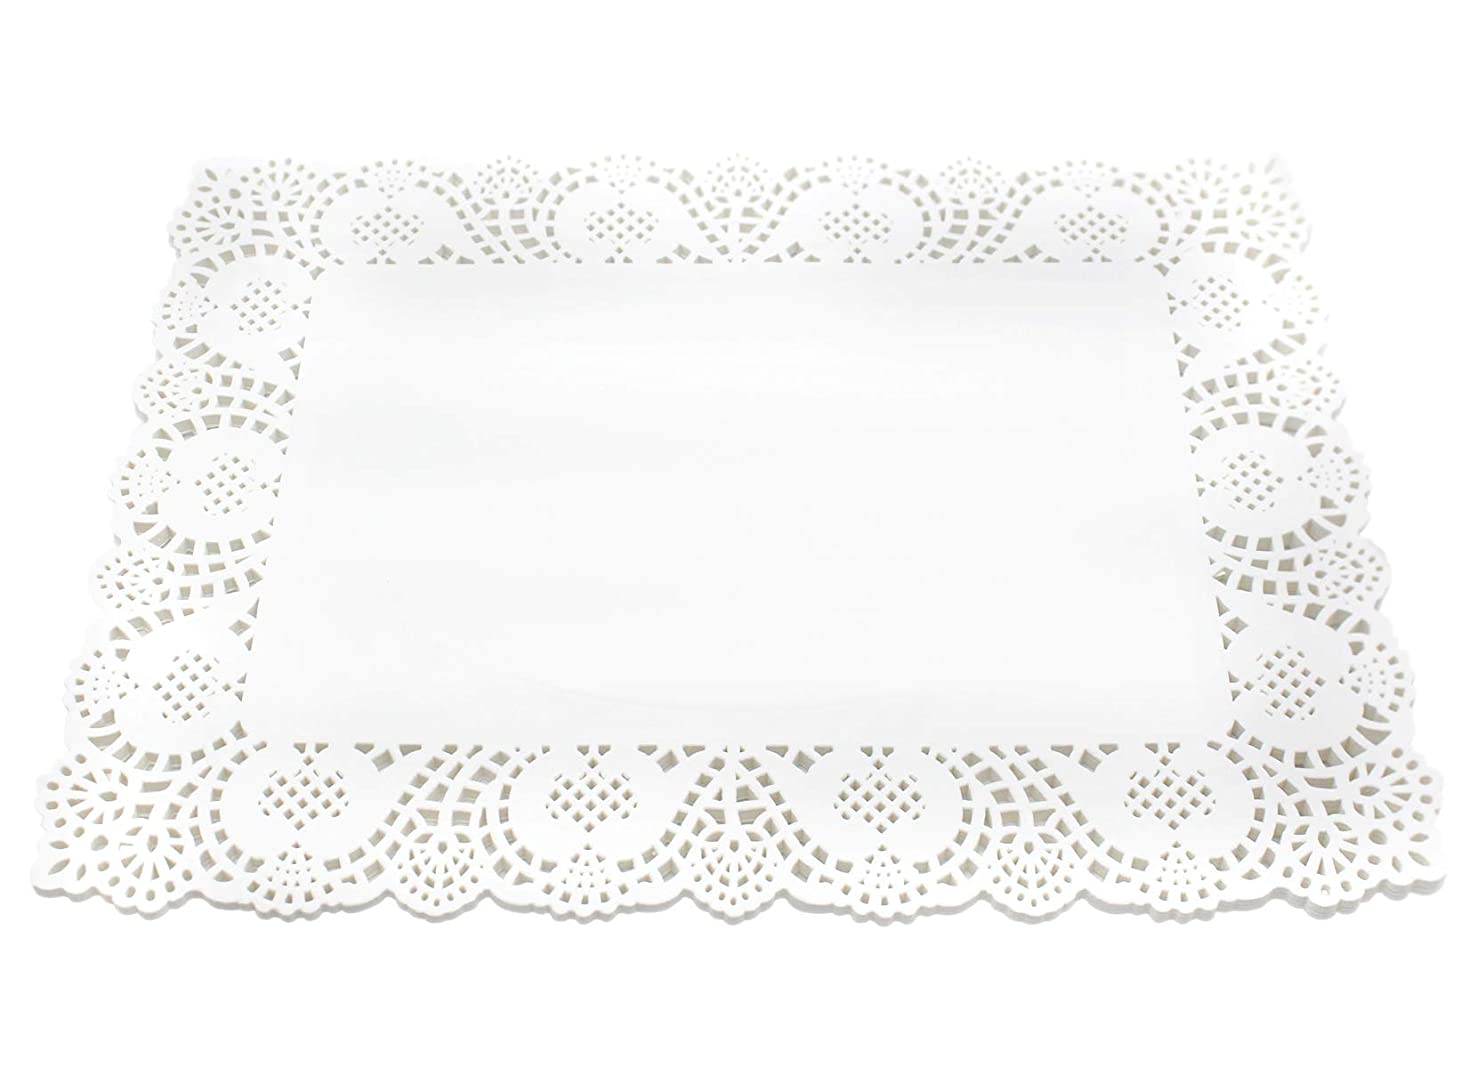 100 Pcs White Rectangle Lace Paper Doilies Placemats for Wedding Tea Party and Baking, 12x8 Inch